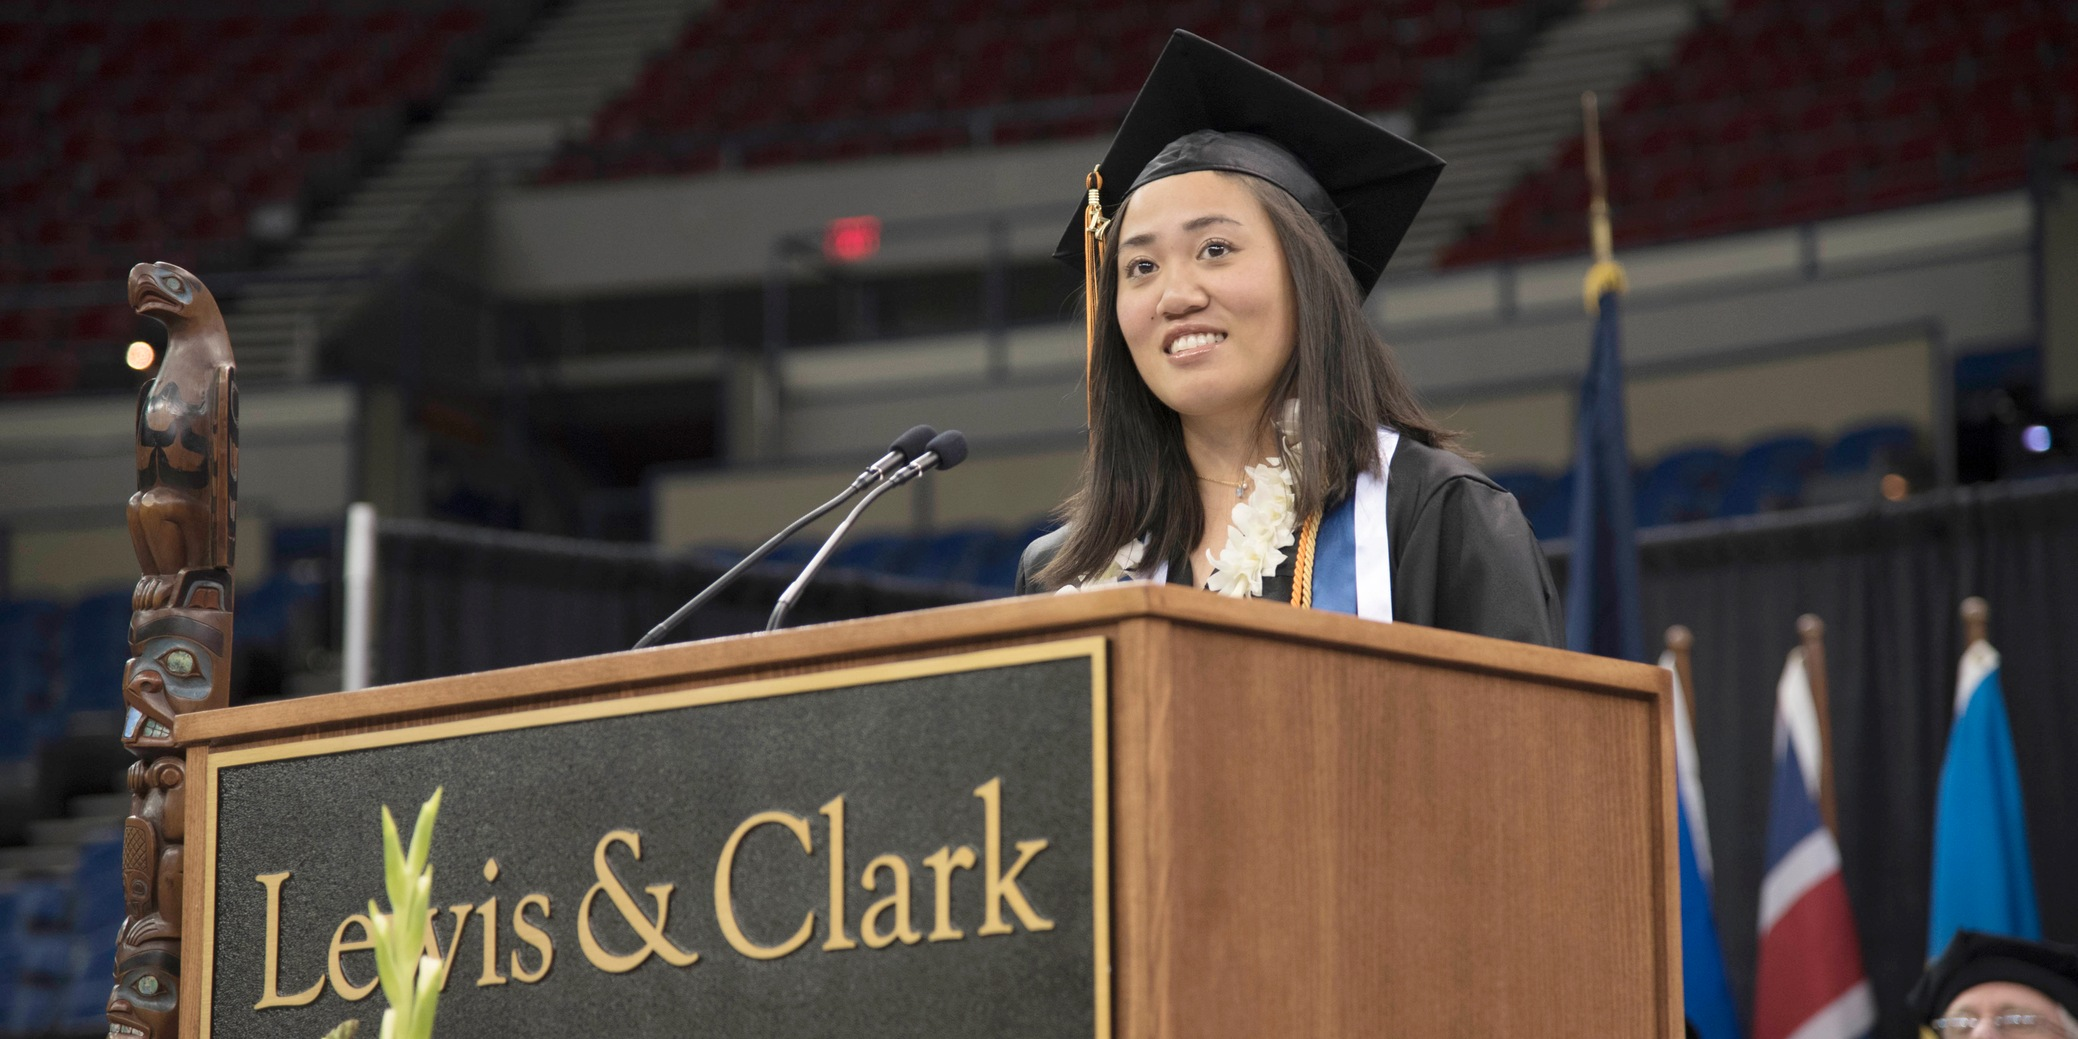 Valdez selected senior speaker, numerous student-athletes earn honors at commencement